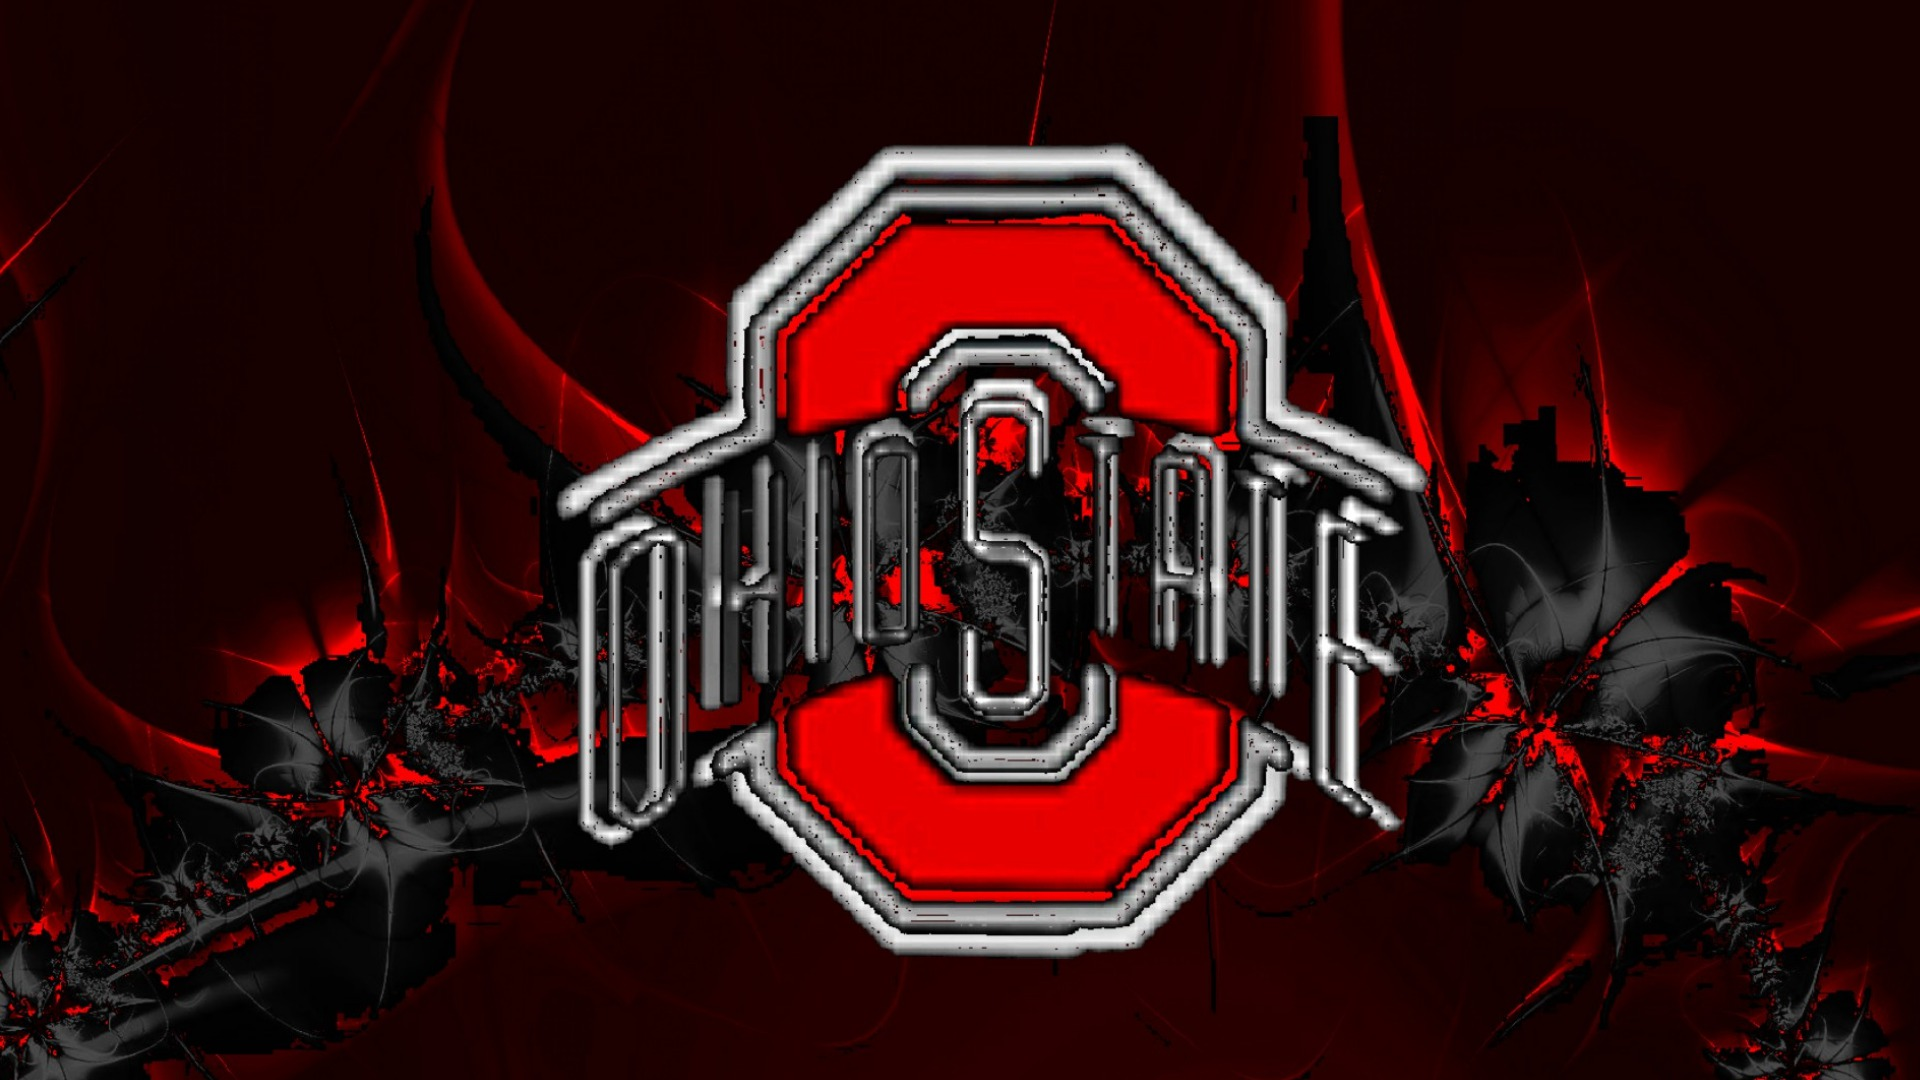 Ohio State Wallpaper 19201080 22198 HD Wallpaper Res 1920x1080 1920x1080